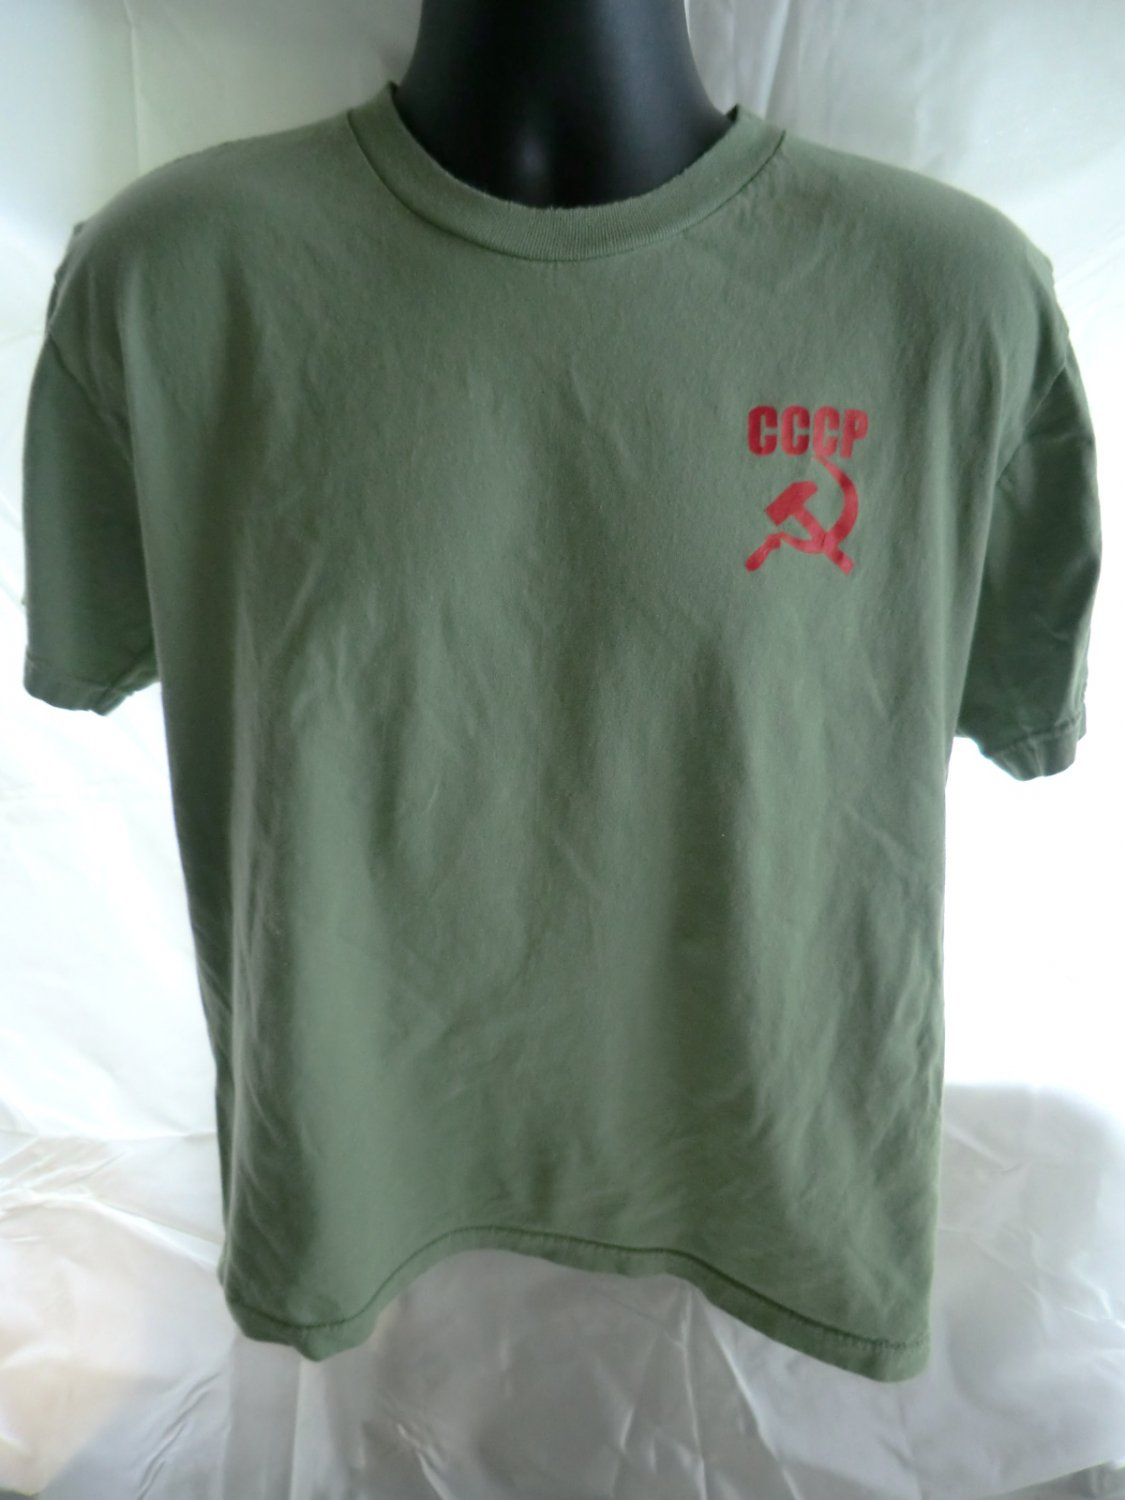 Fun CCCP SOVIET AIRLINES Size Large T-Shirt USSR Russia